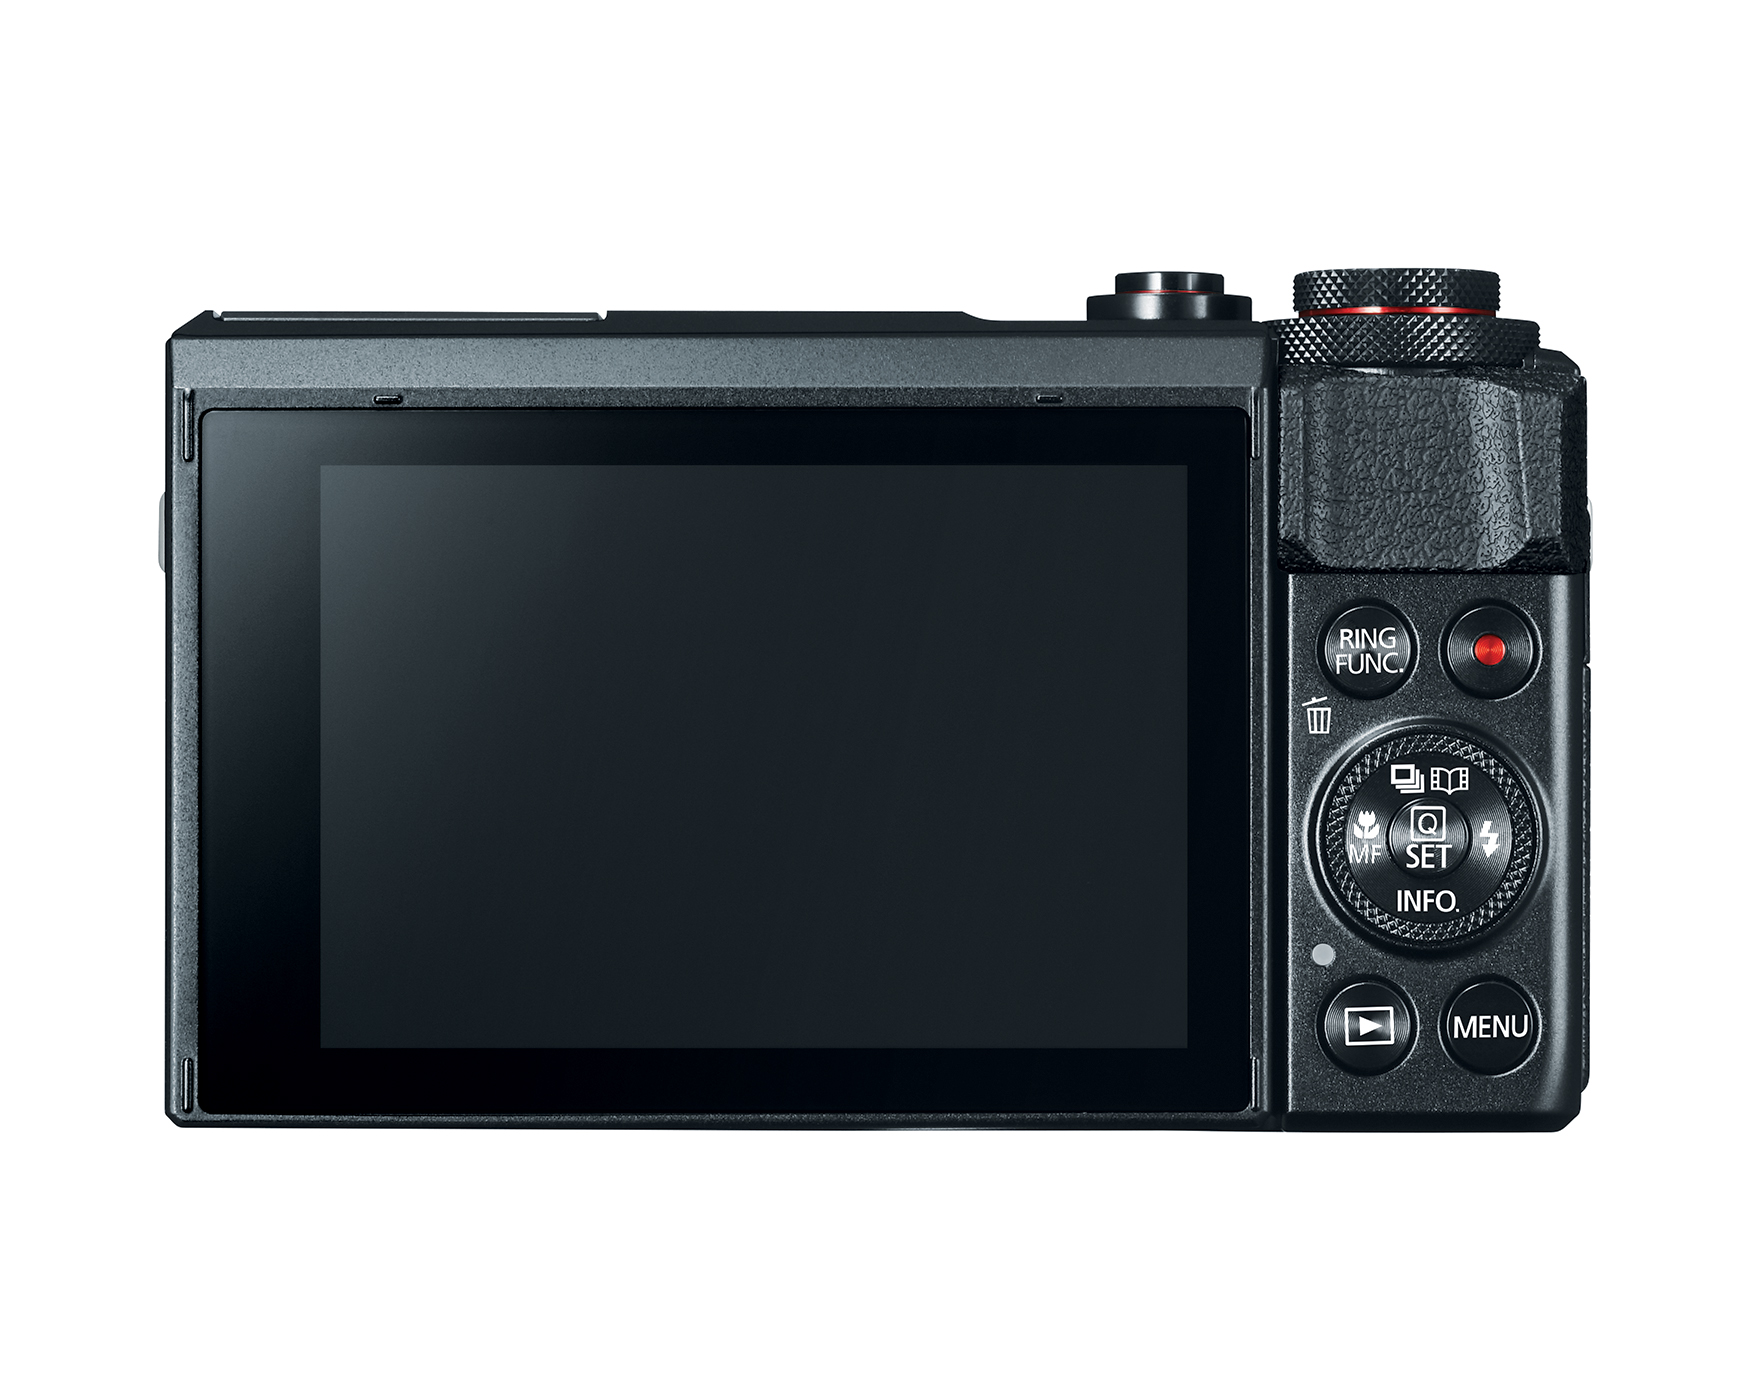 Canon Powershot G7 X Mark Ii Review Overview Steves Digicams G3 Wi Fi And Nfc Hr G7x Markii Back Cl